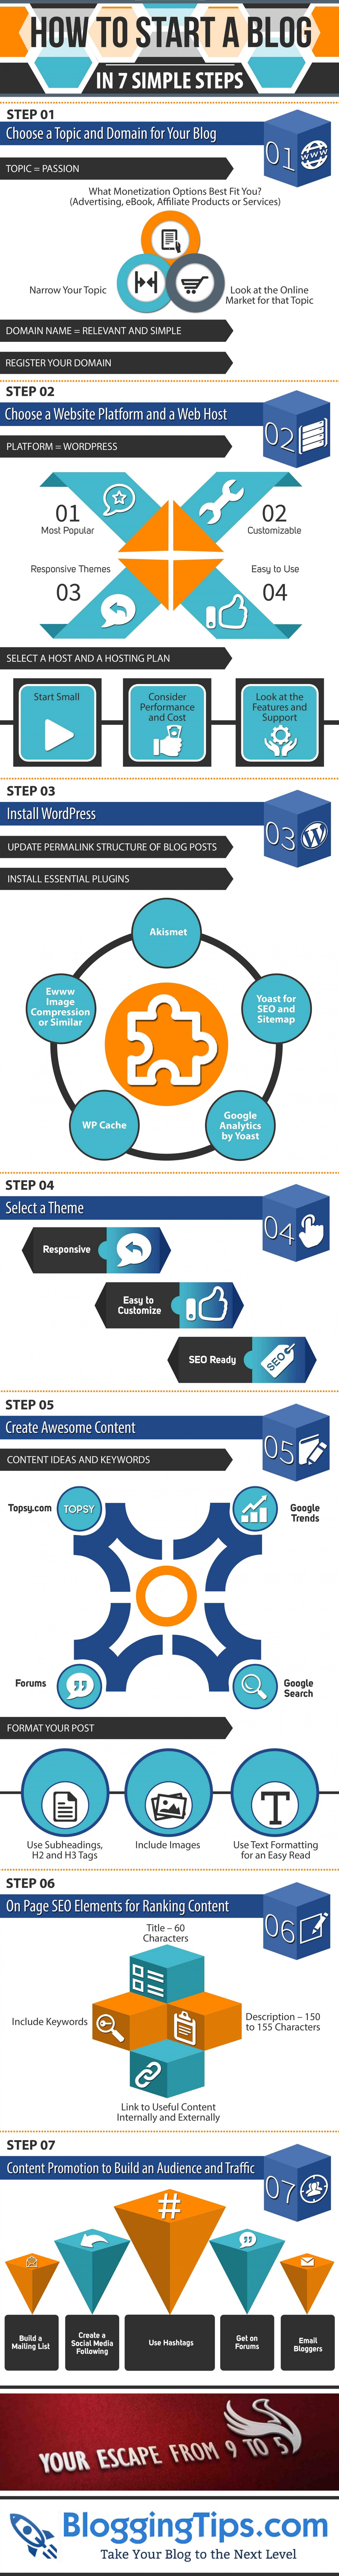 How to Start a Blog in 7 Simple Steps Infographic